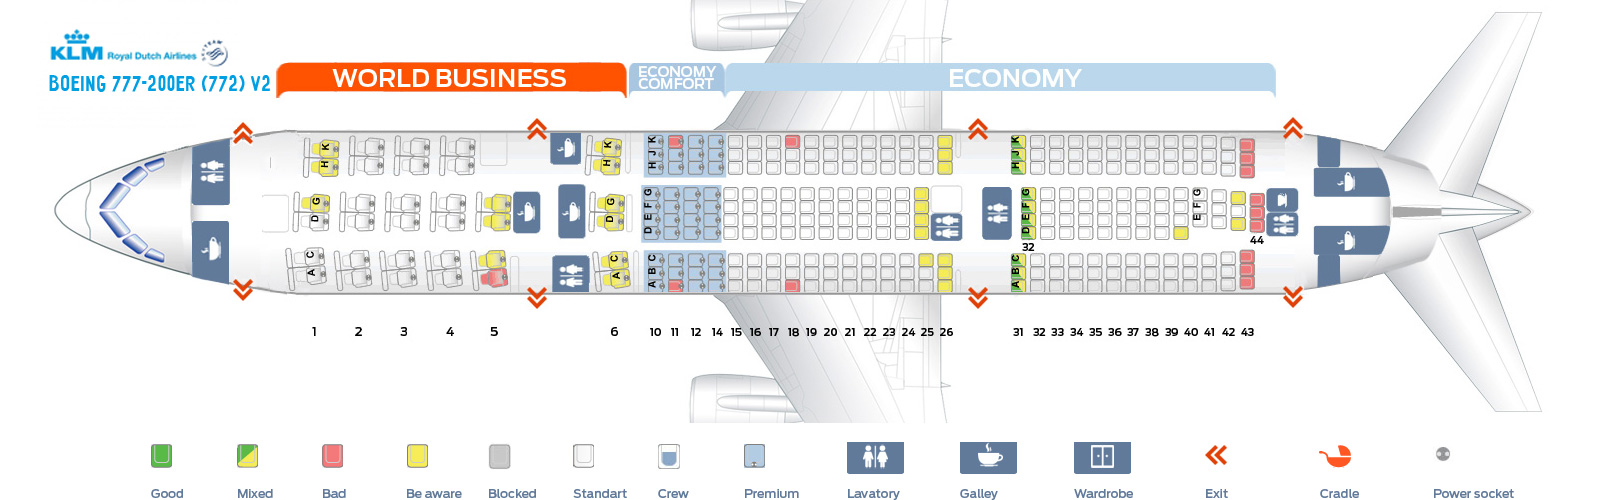 Seat Map And Seating Chart Klm Boeing 777 200er New World Business